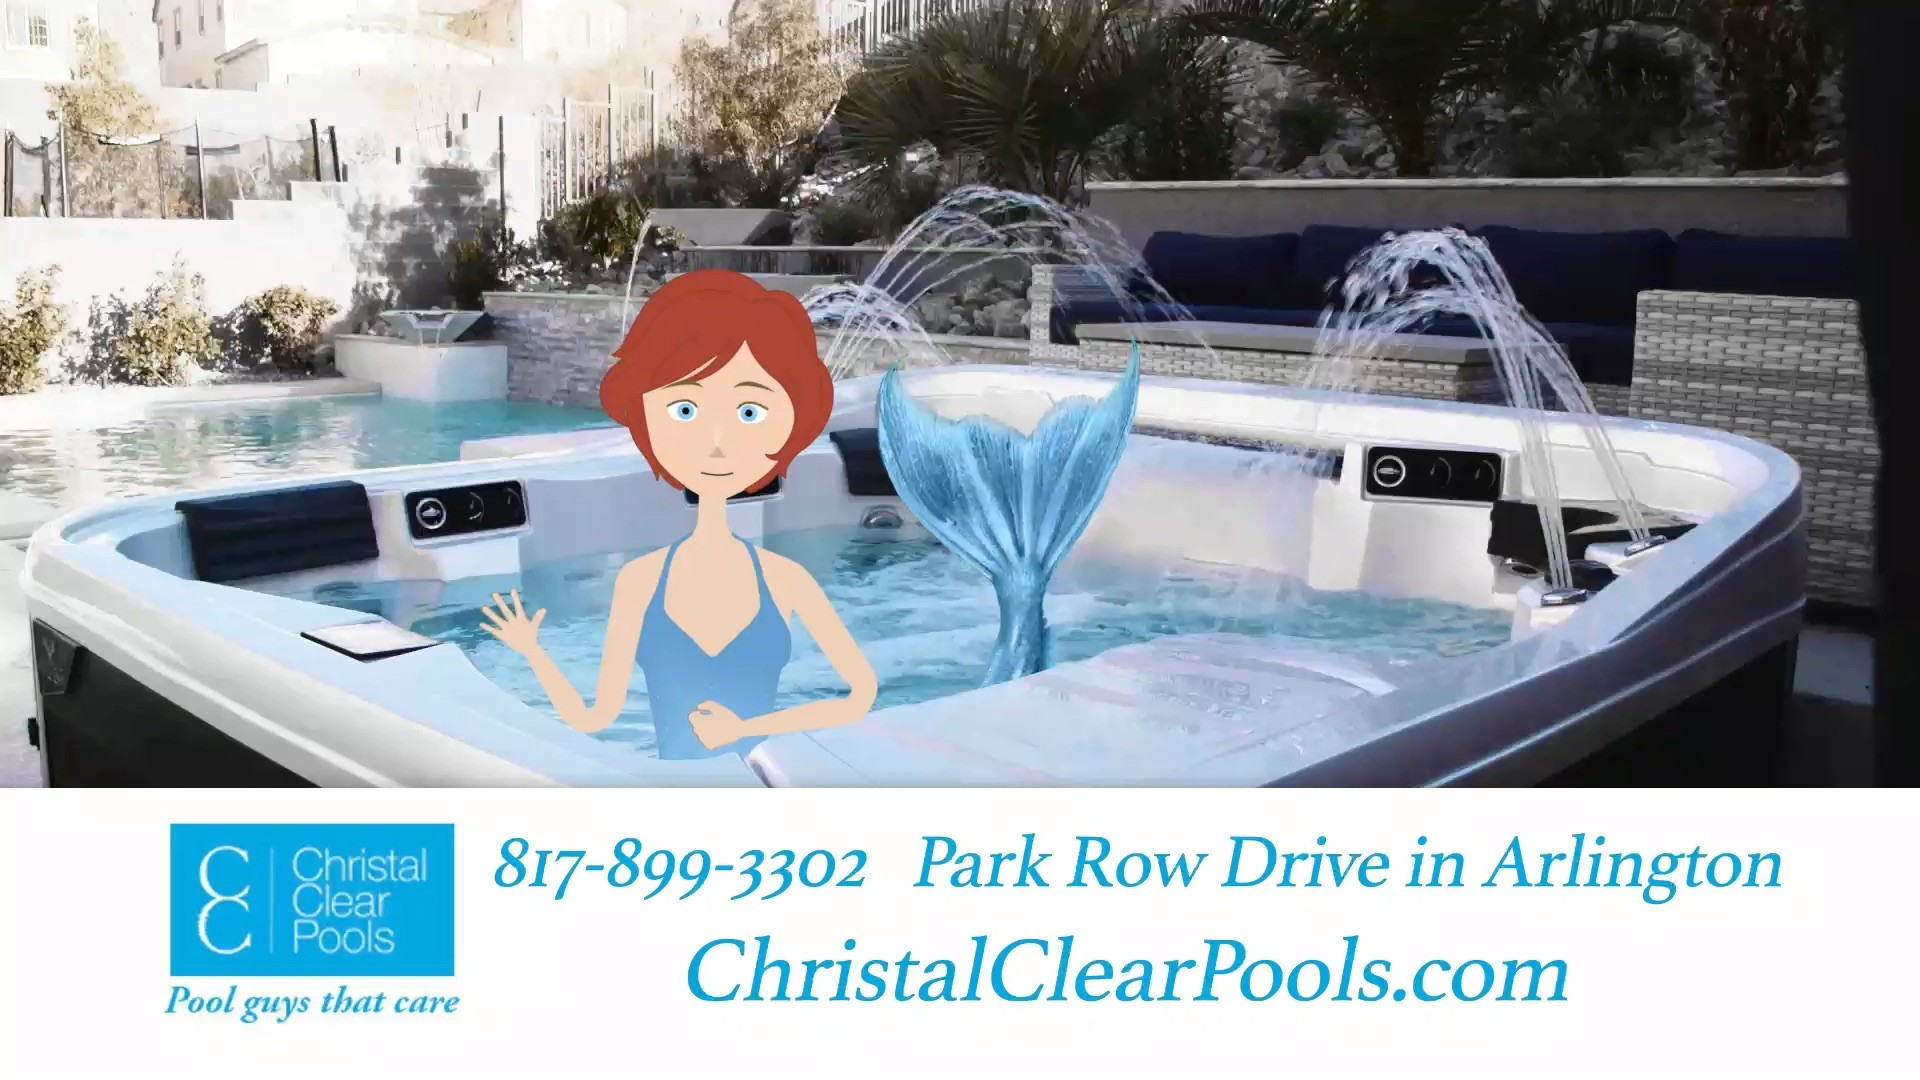 Christal Clear Pools: Tubs & Spas